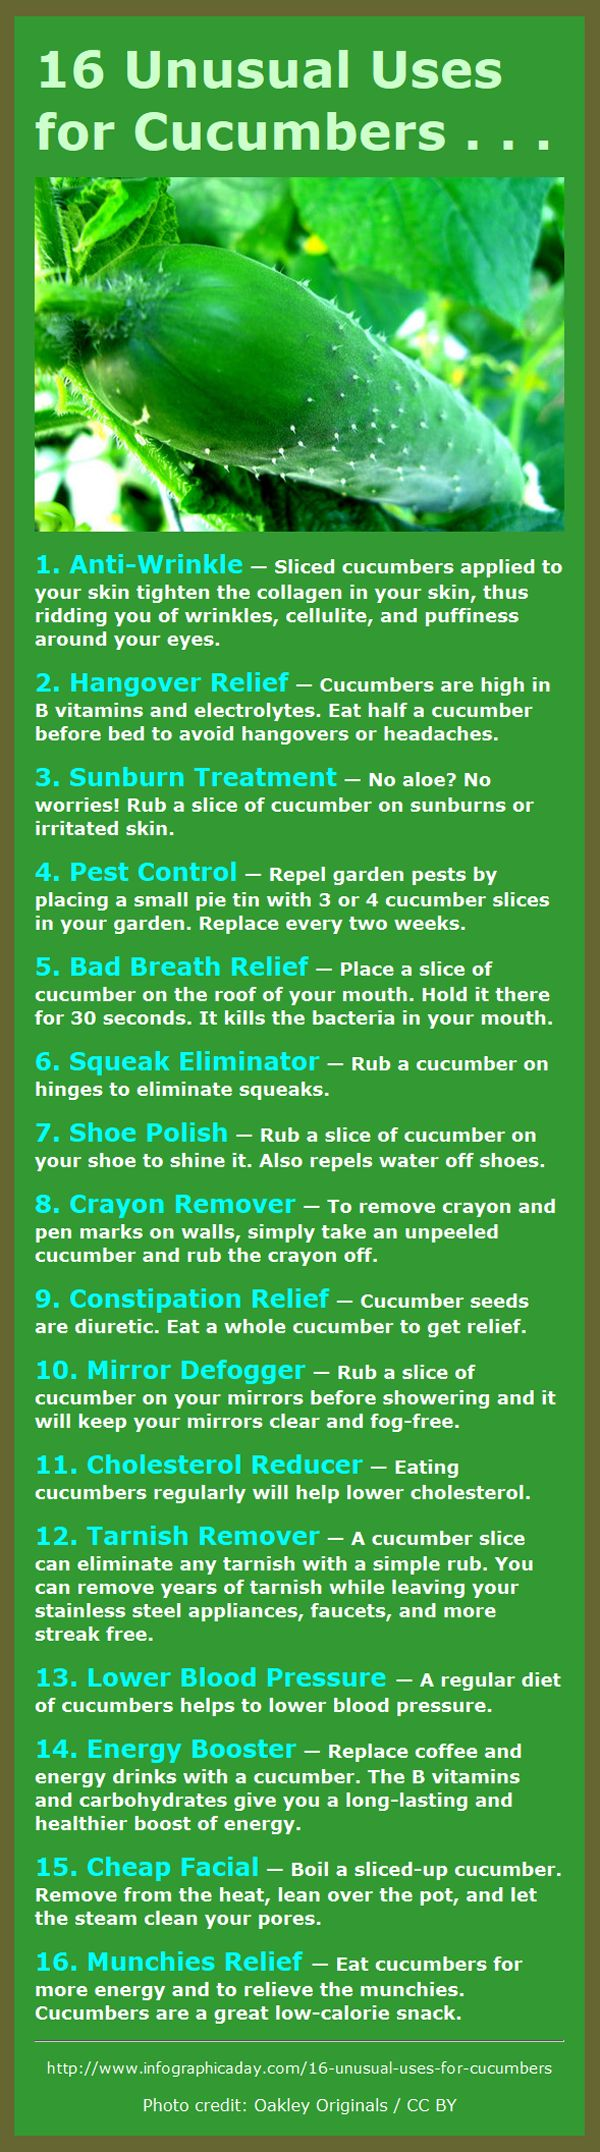 16 Great Uses for Cucumbers – They're not just for eating! - unless you have the munchies. Cucumbers are the best munchies food ever! #Fitness Matters